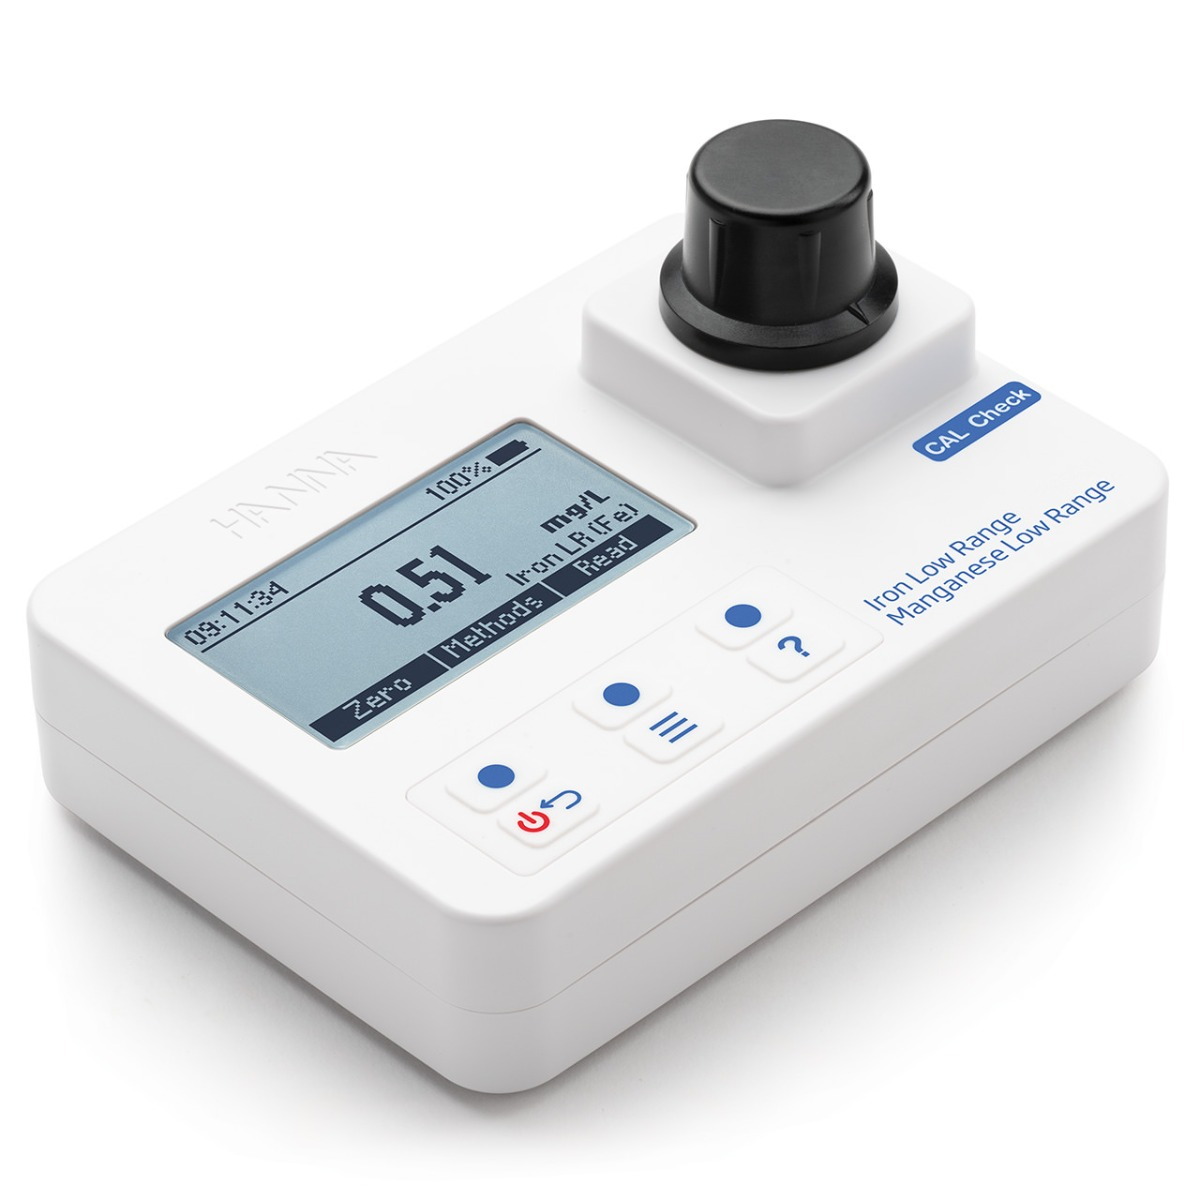 Iron and Manganese Low-Range Portable Photometer with CAL Check - HI97742